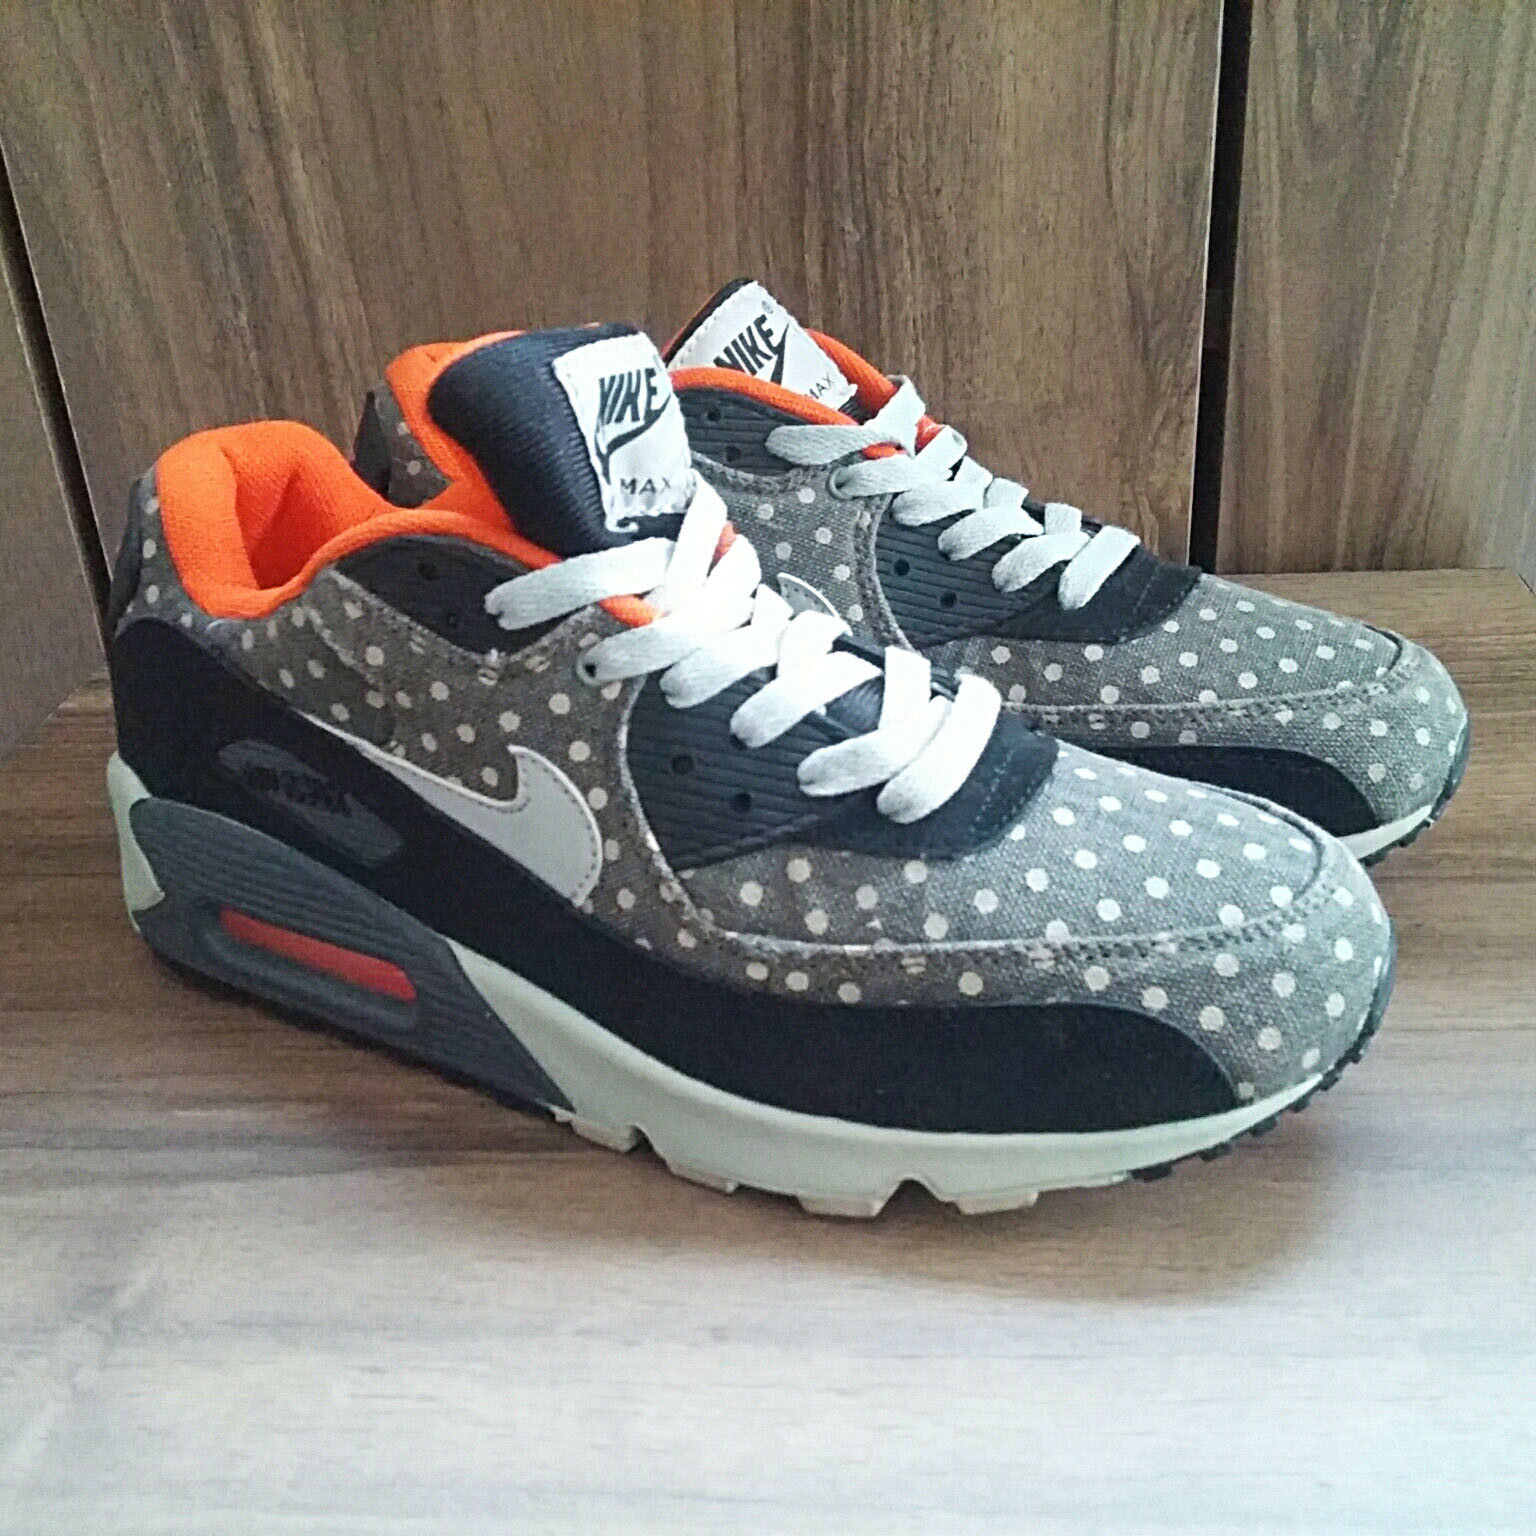 Used NIKE AIR MAX POLKA-DOT Leather Premium 666578 006 US 8 Grey